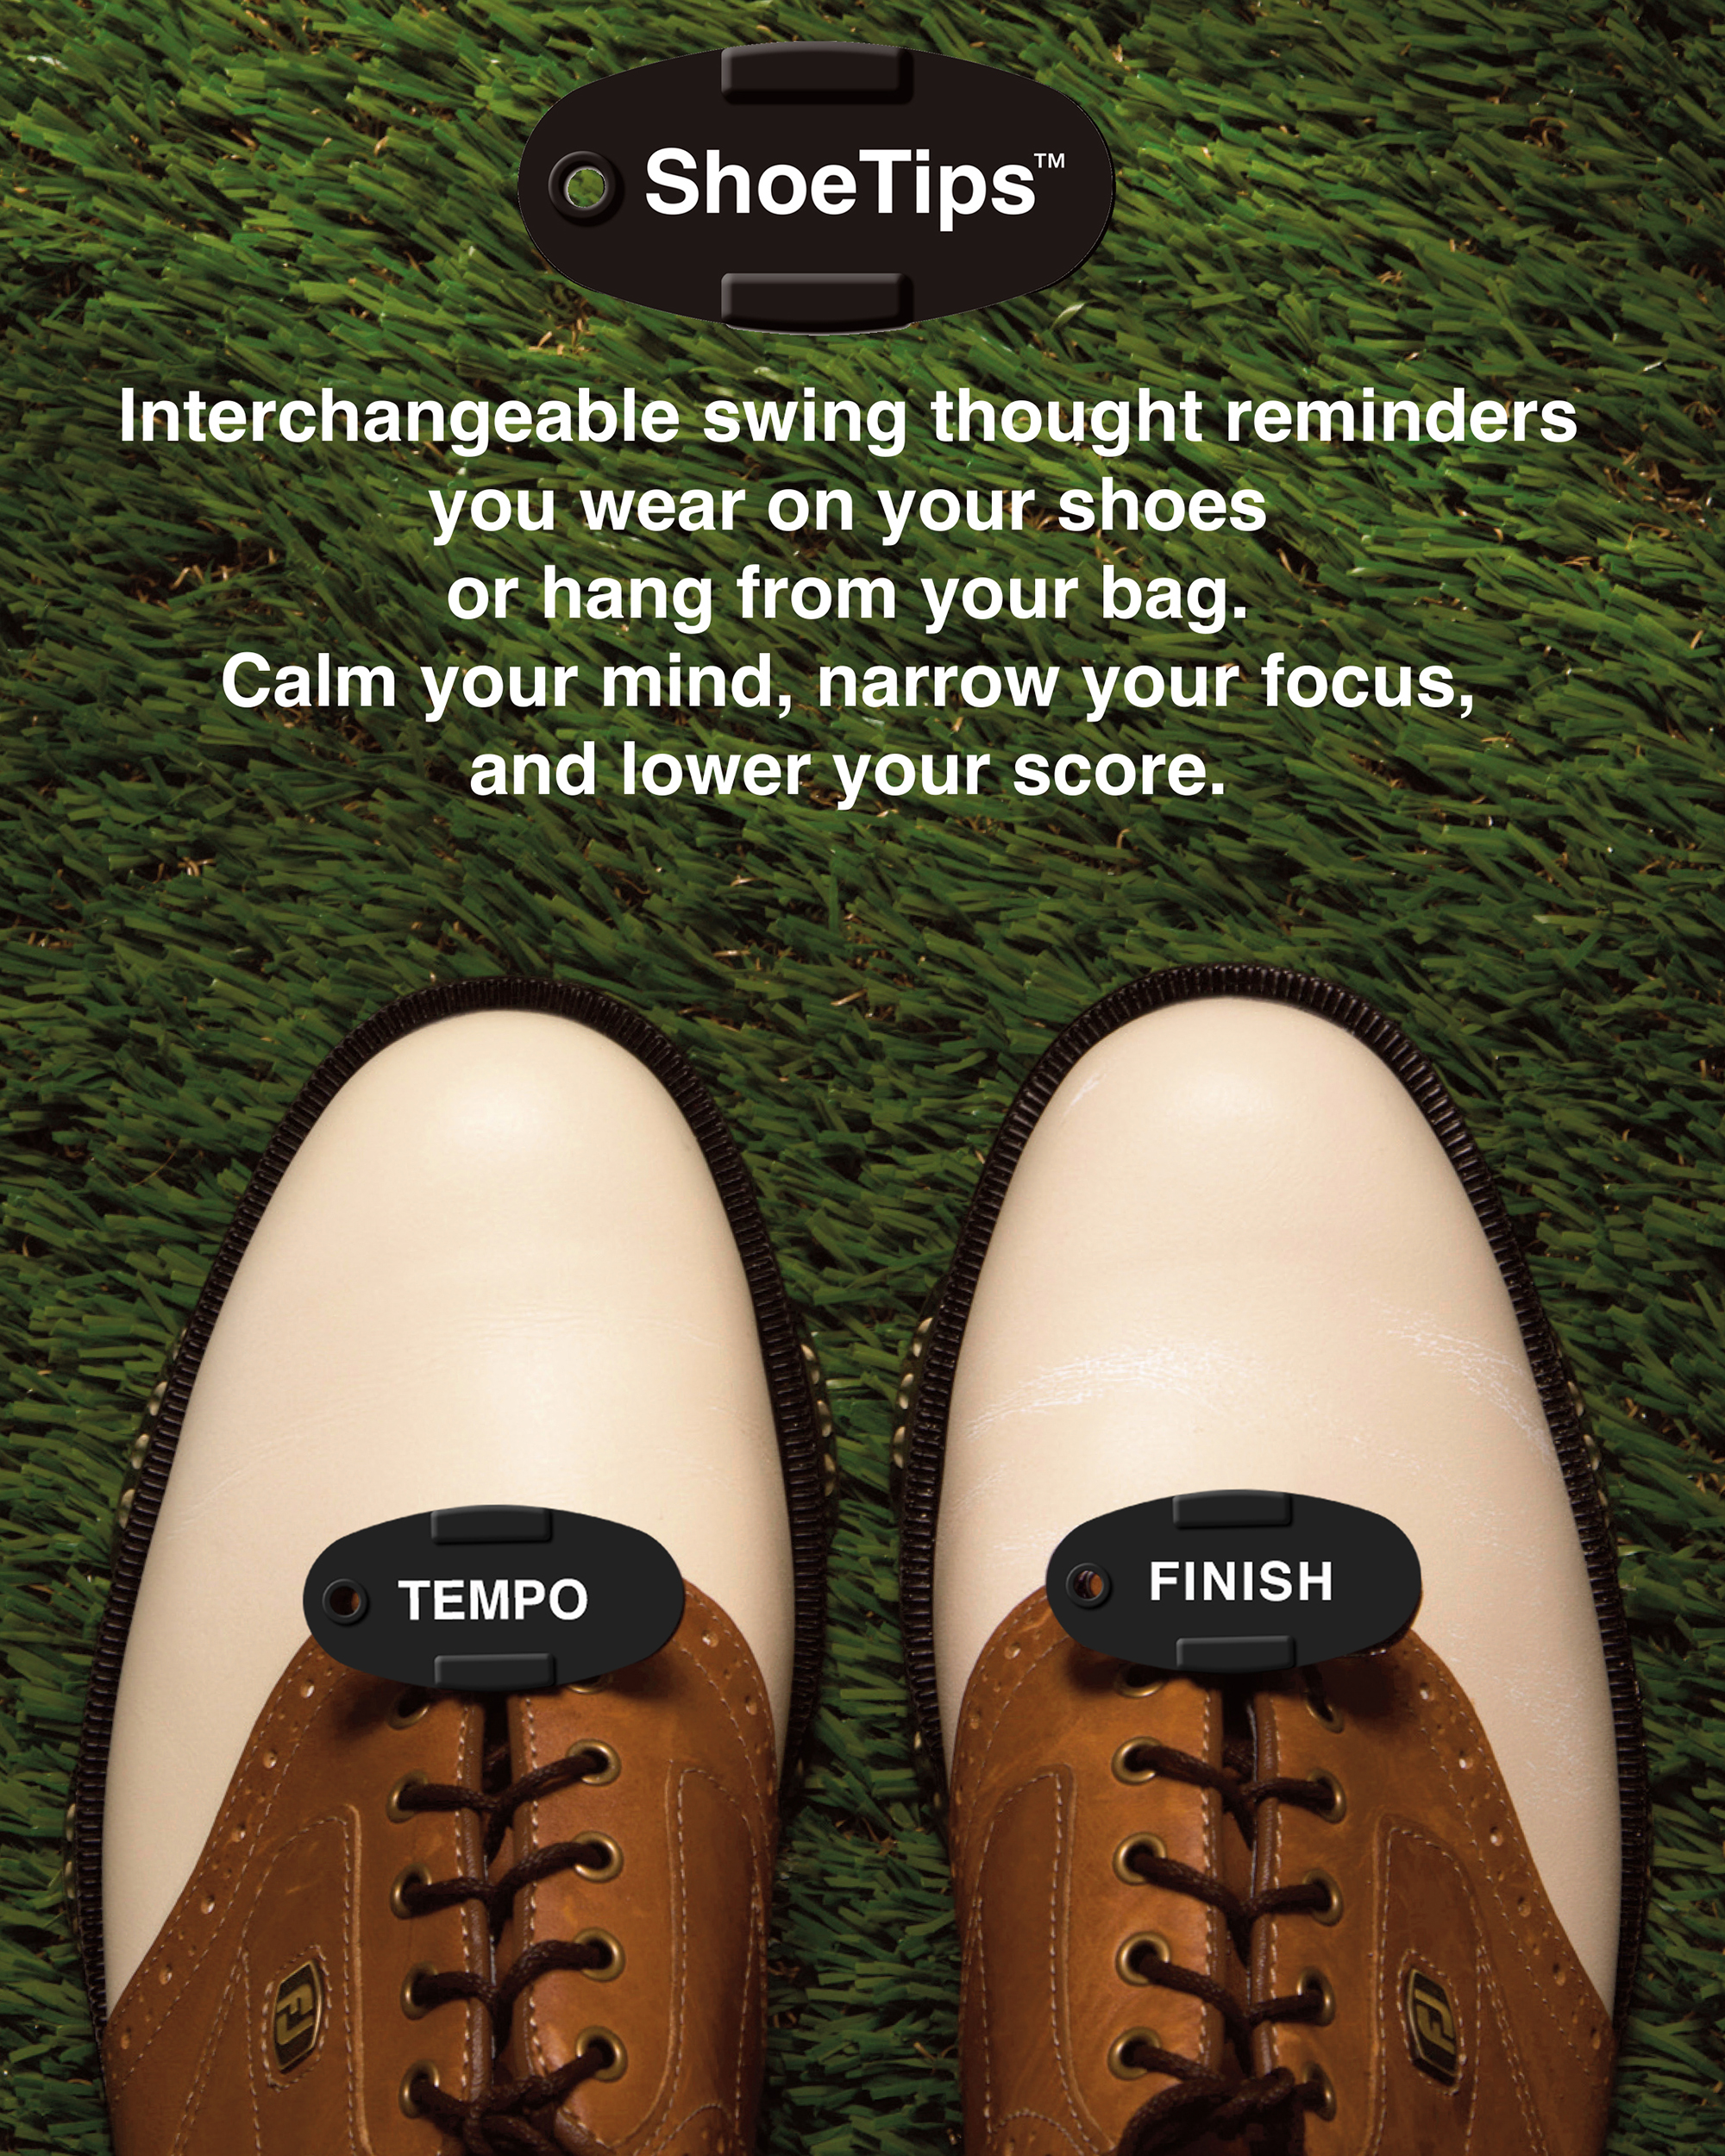 ShoeTips Golf Training Aids